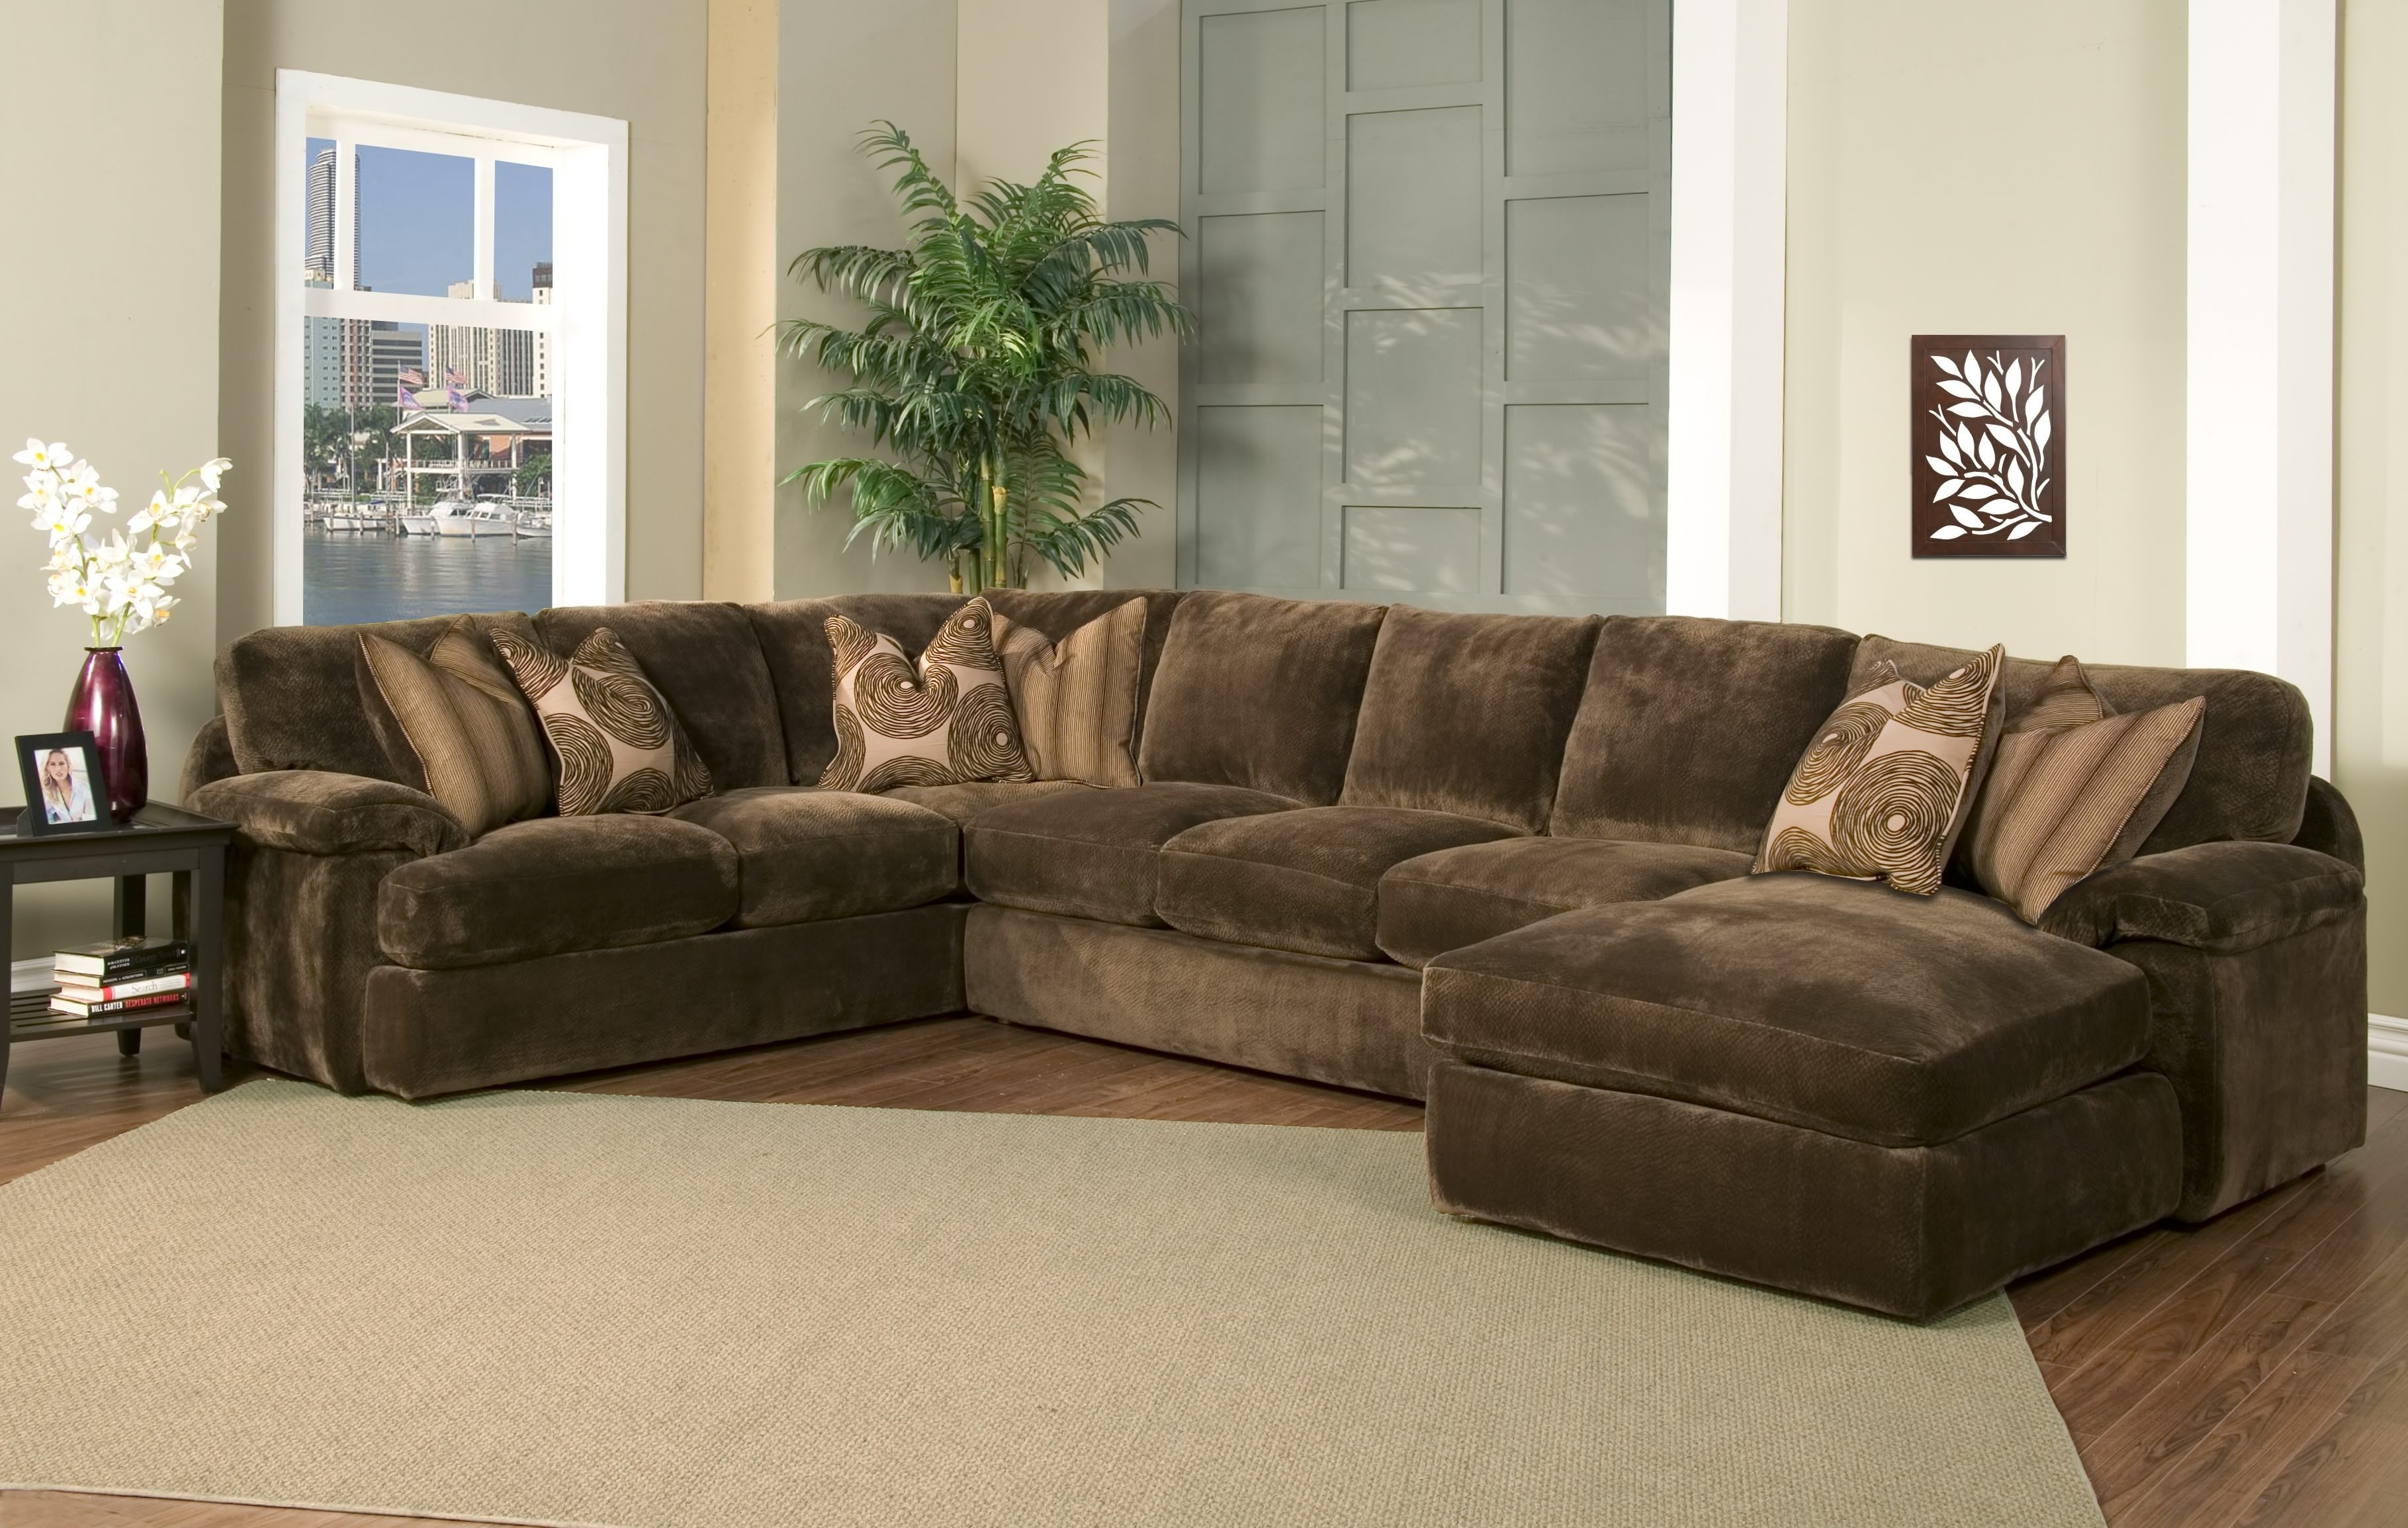 Sectional Sofa Design: Down Sectional Sofa Blend Wrapped Goose Regarding Down Filled Sectional Sofas (View 7 of 10)